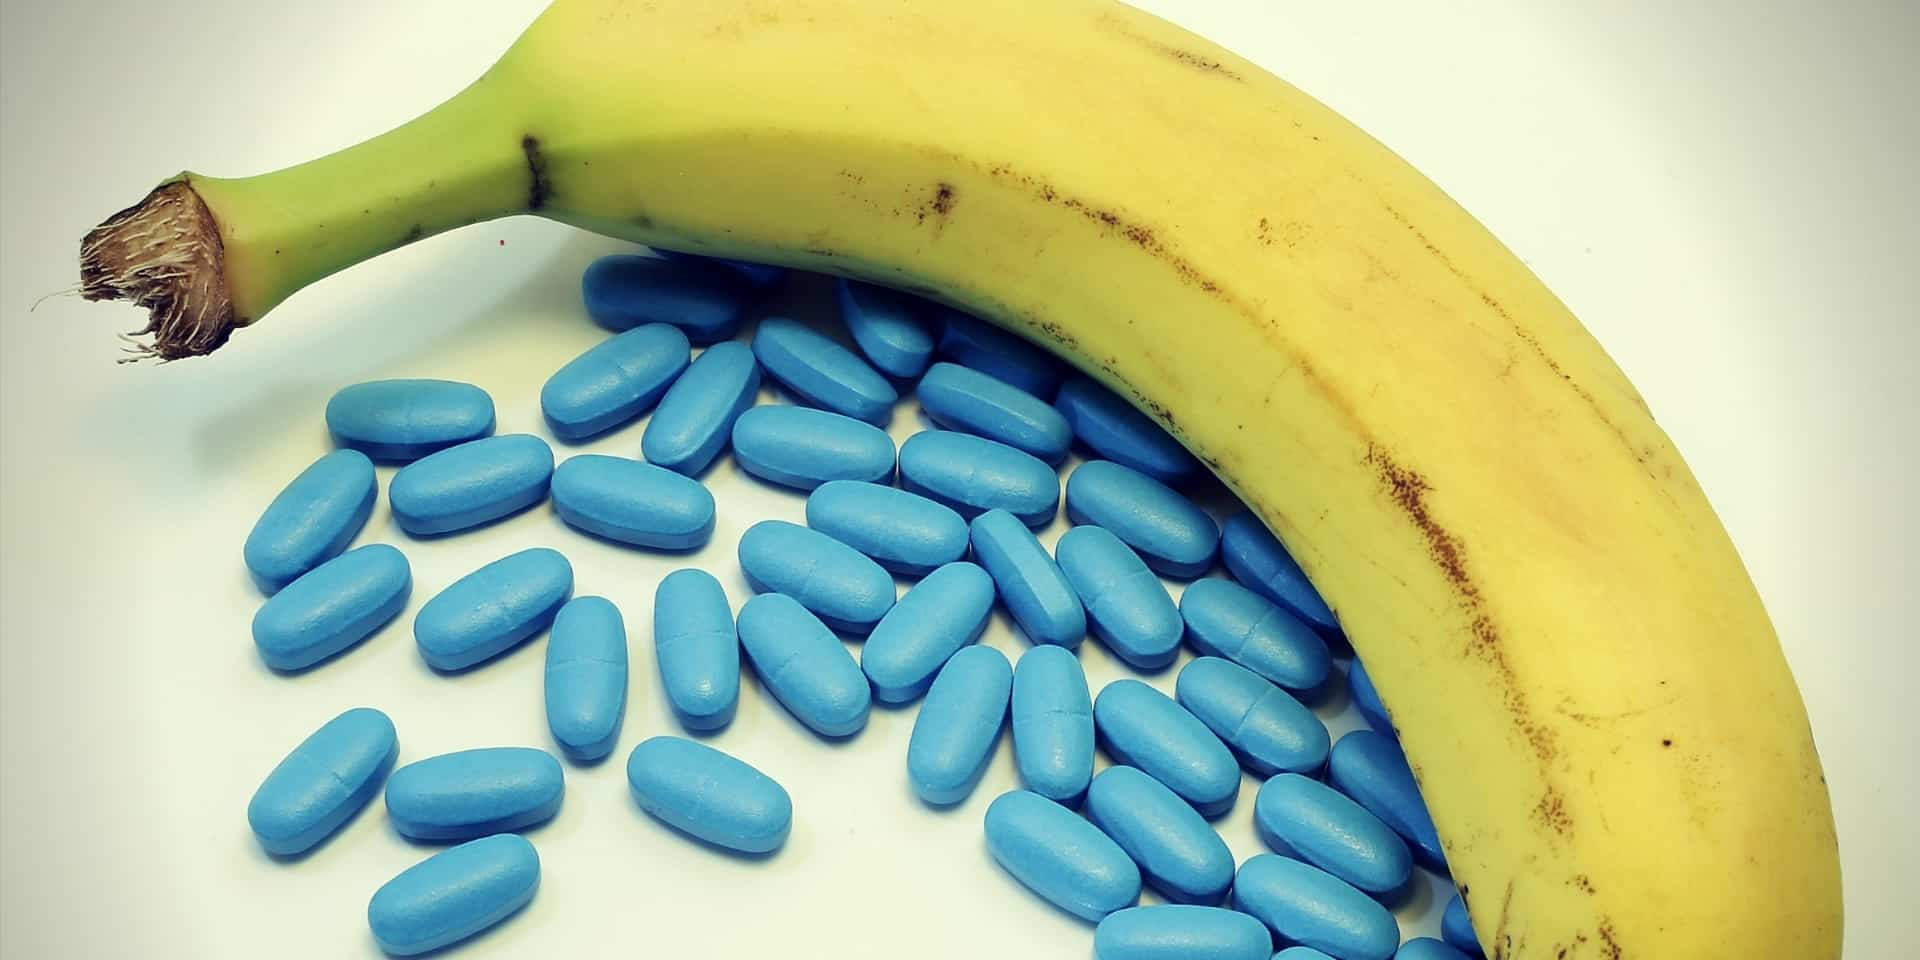 Viagra Foods banana with many blue pills for male problems